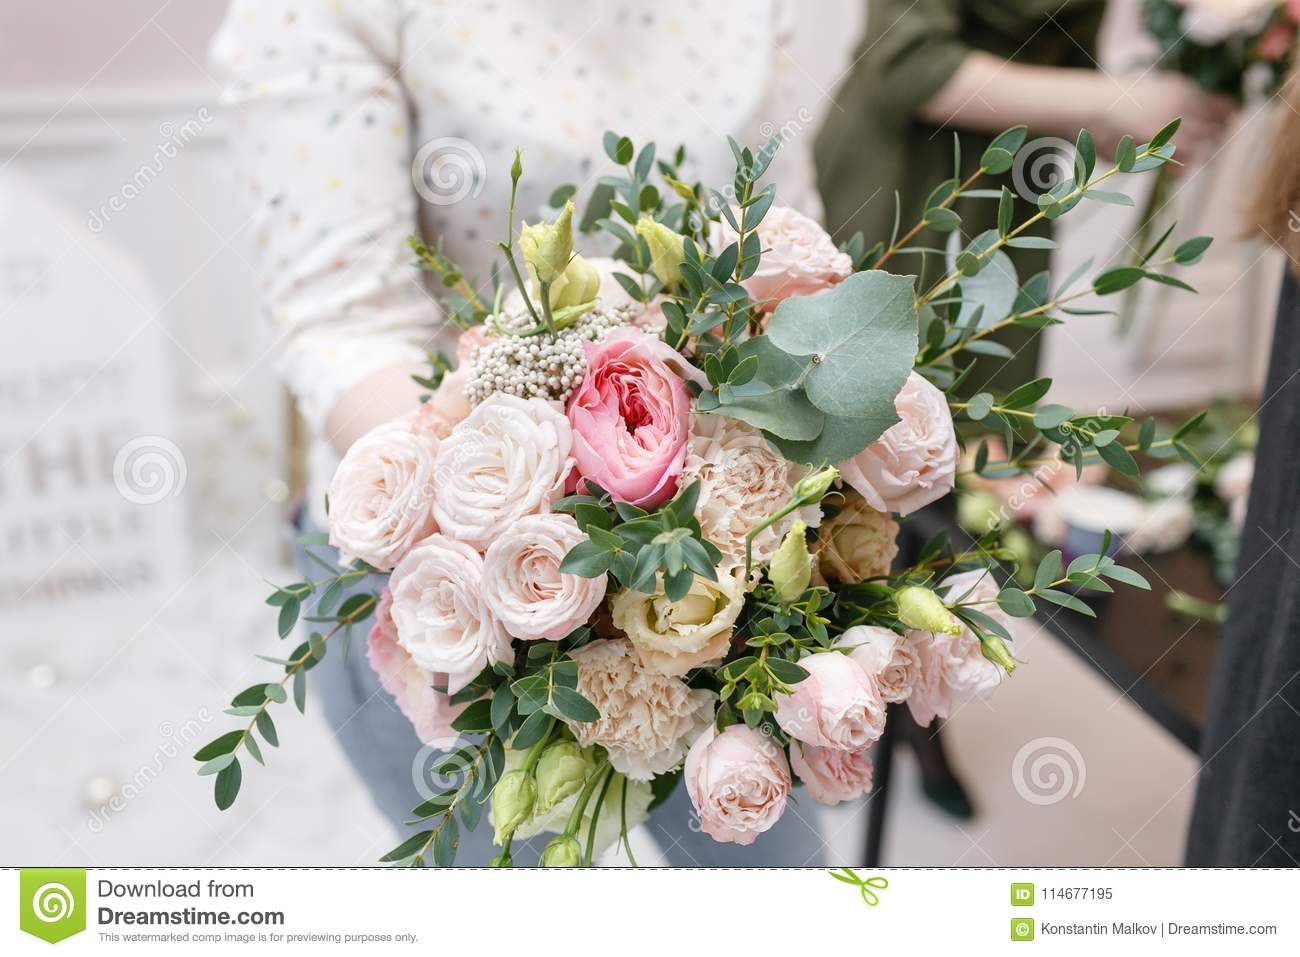 Master class on making bouquets spring bouquet learning flower master class on making bouquets spring bouquet learning flower arranging making beautiful bouquets with your own hands izmirmasajfo